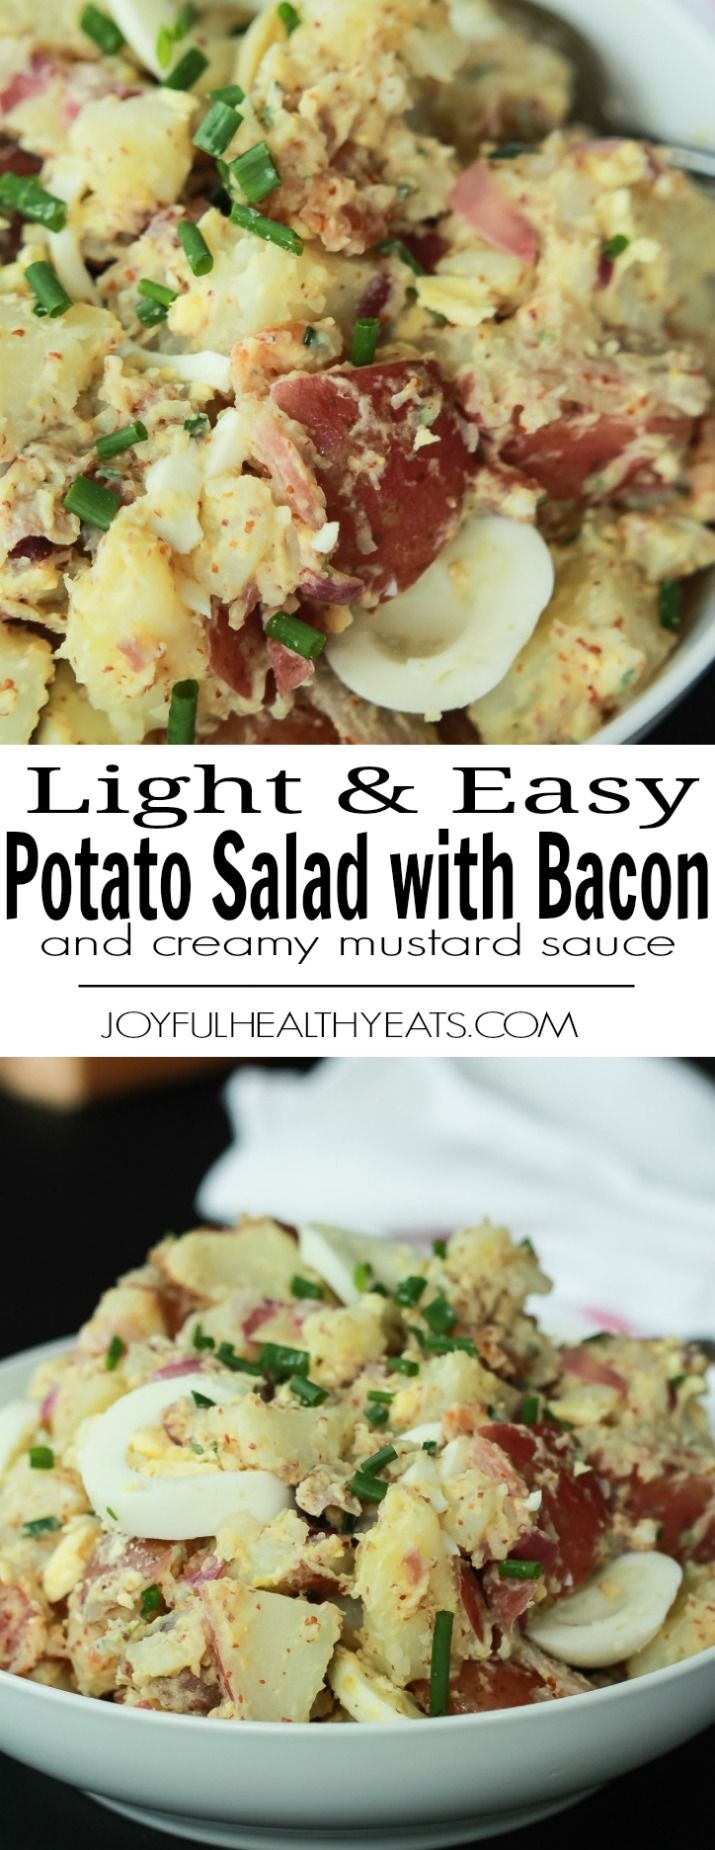 A Light & Easy Potato Salad with a Creamy Mustard Sauce using greek yogurt. Filled with bacon goodness, fresh chives, and hardboiled eggs - a low calorie dish with the same great taste! |joyfulhealthyeats.com #glutenfree